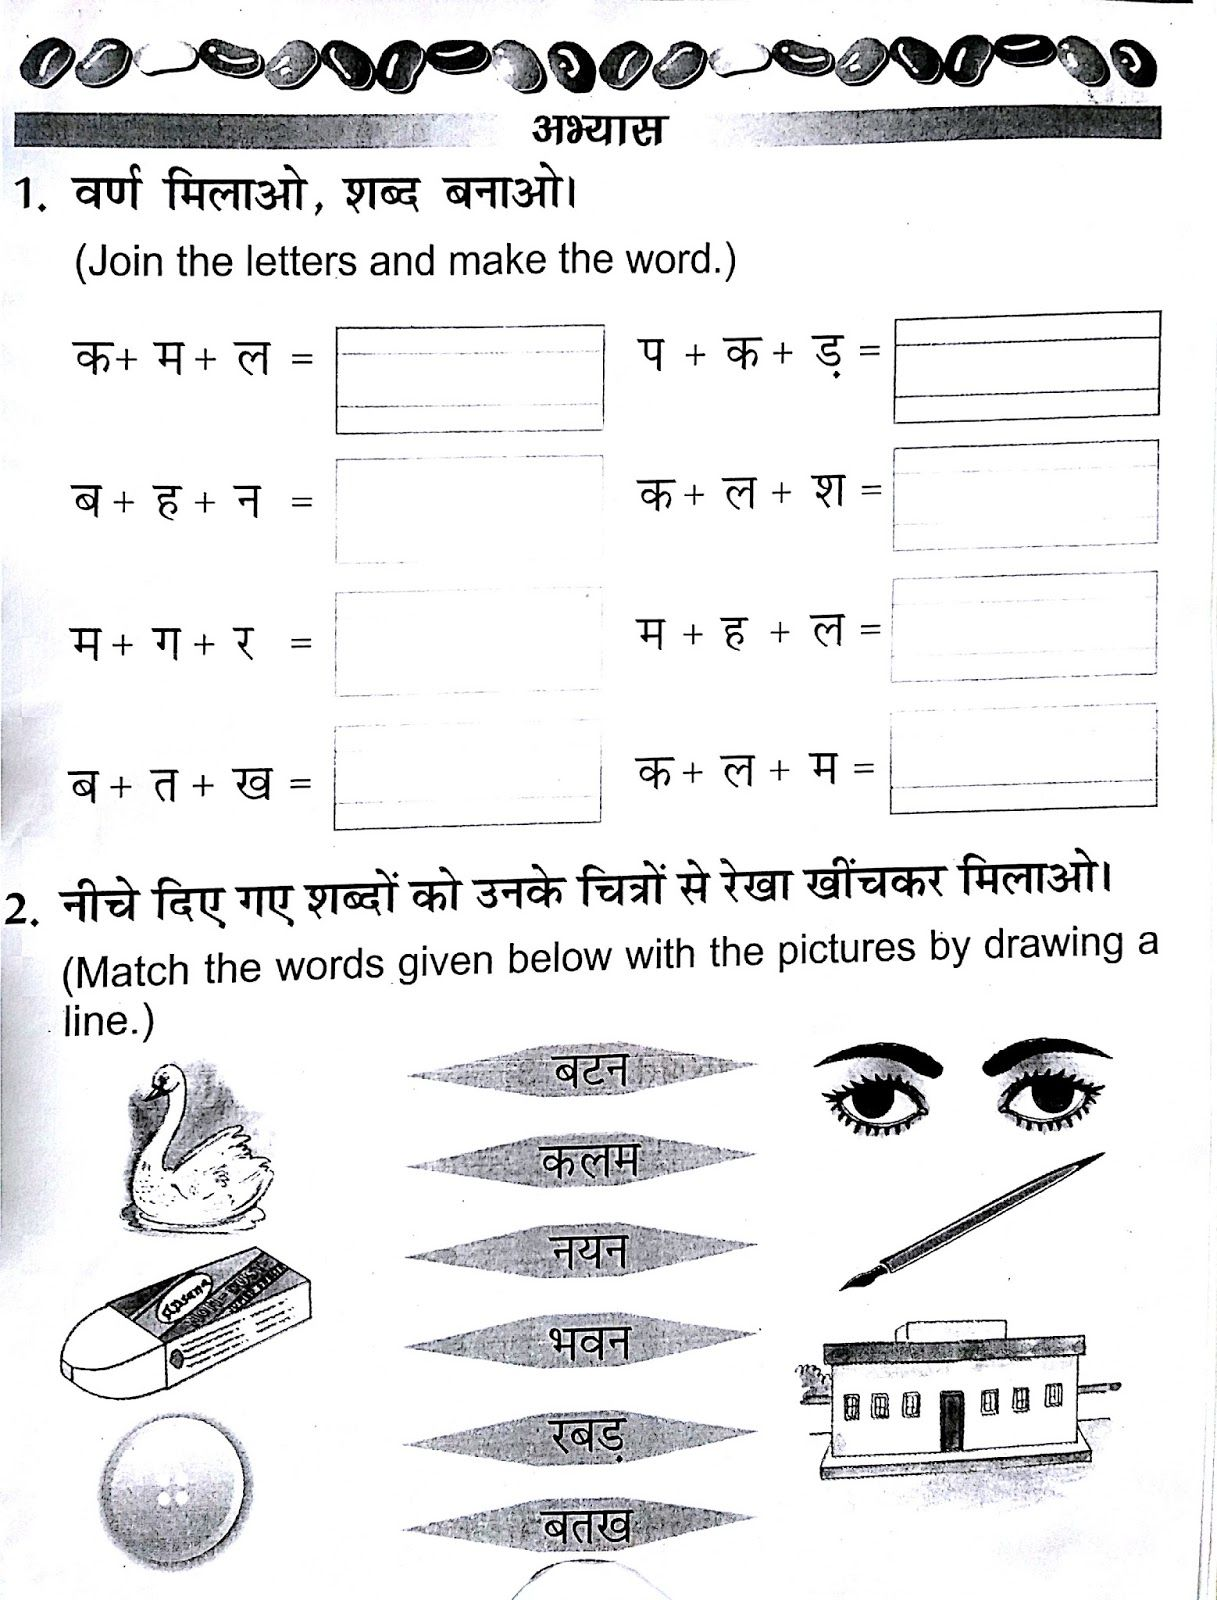 Matra Work Sheets For Classes 3 4 5 And 6 With Solutions